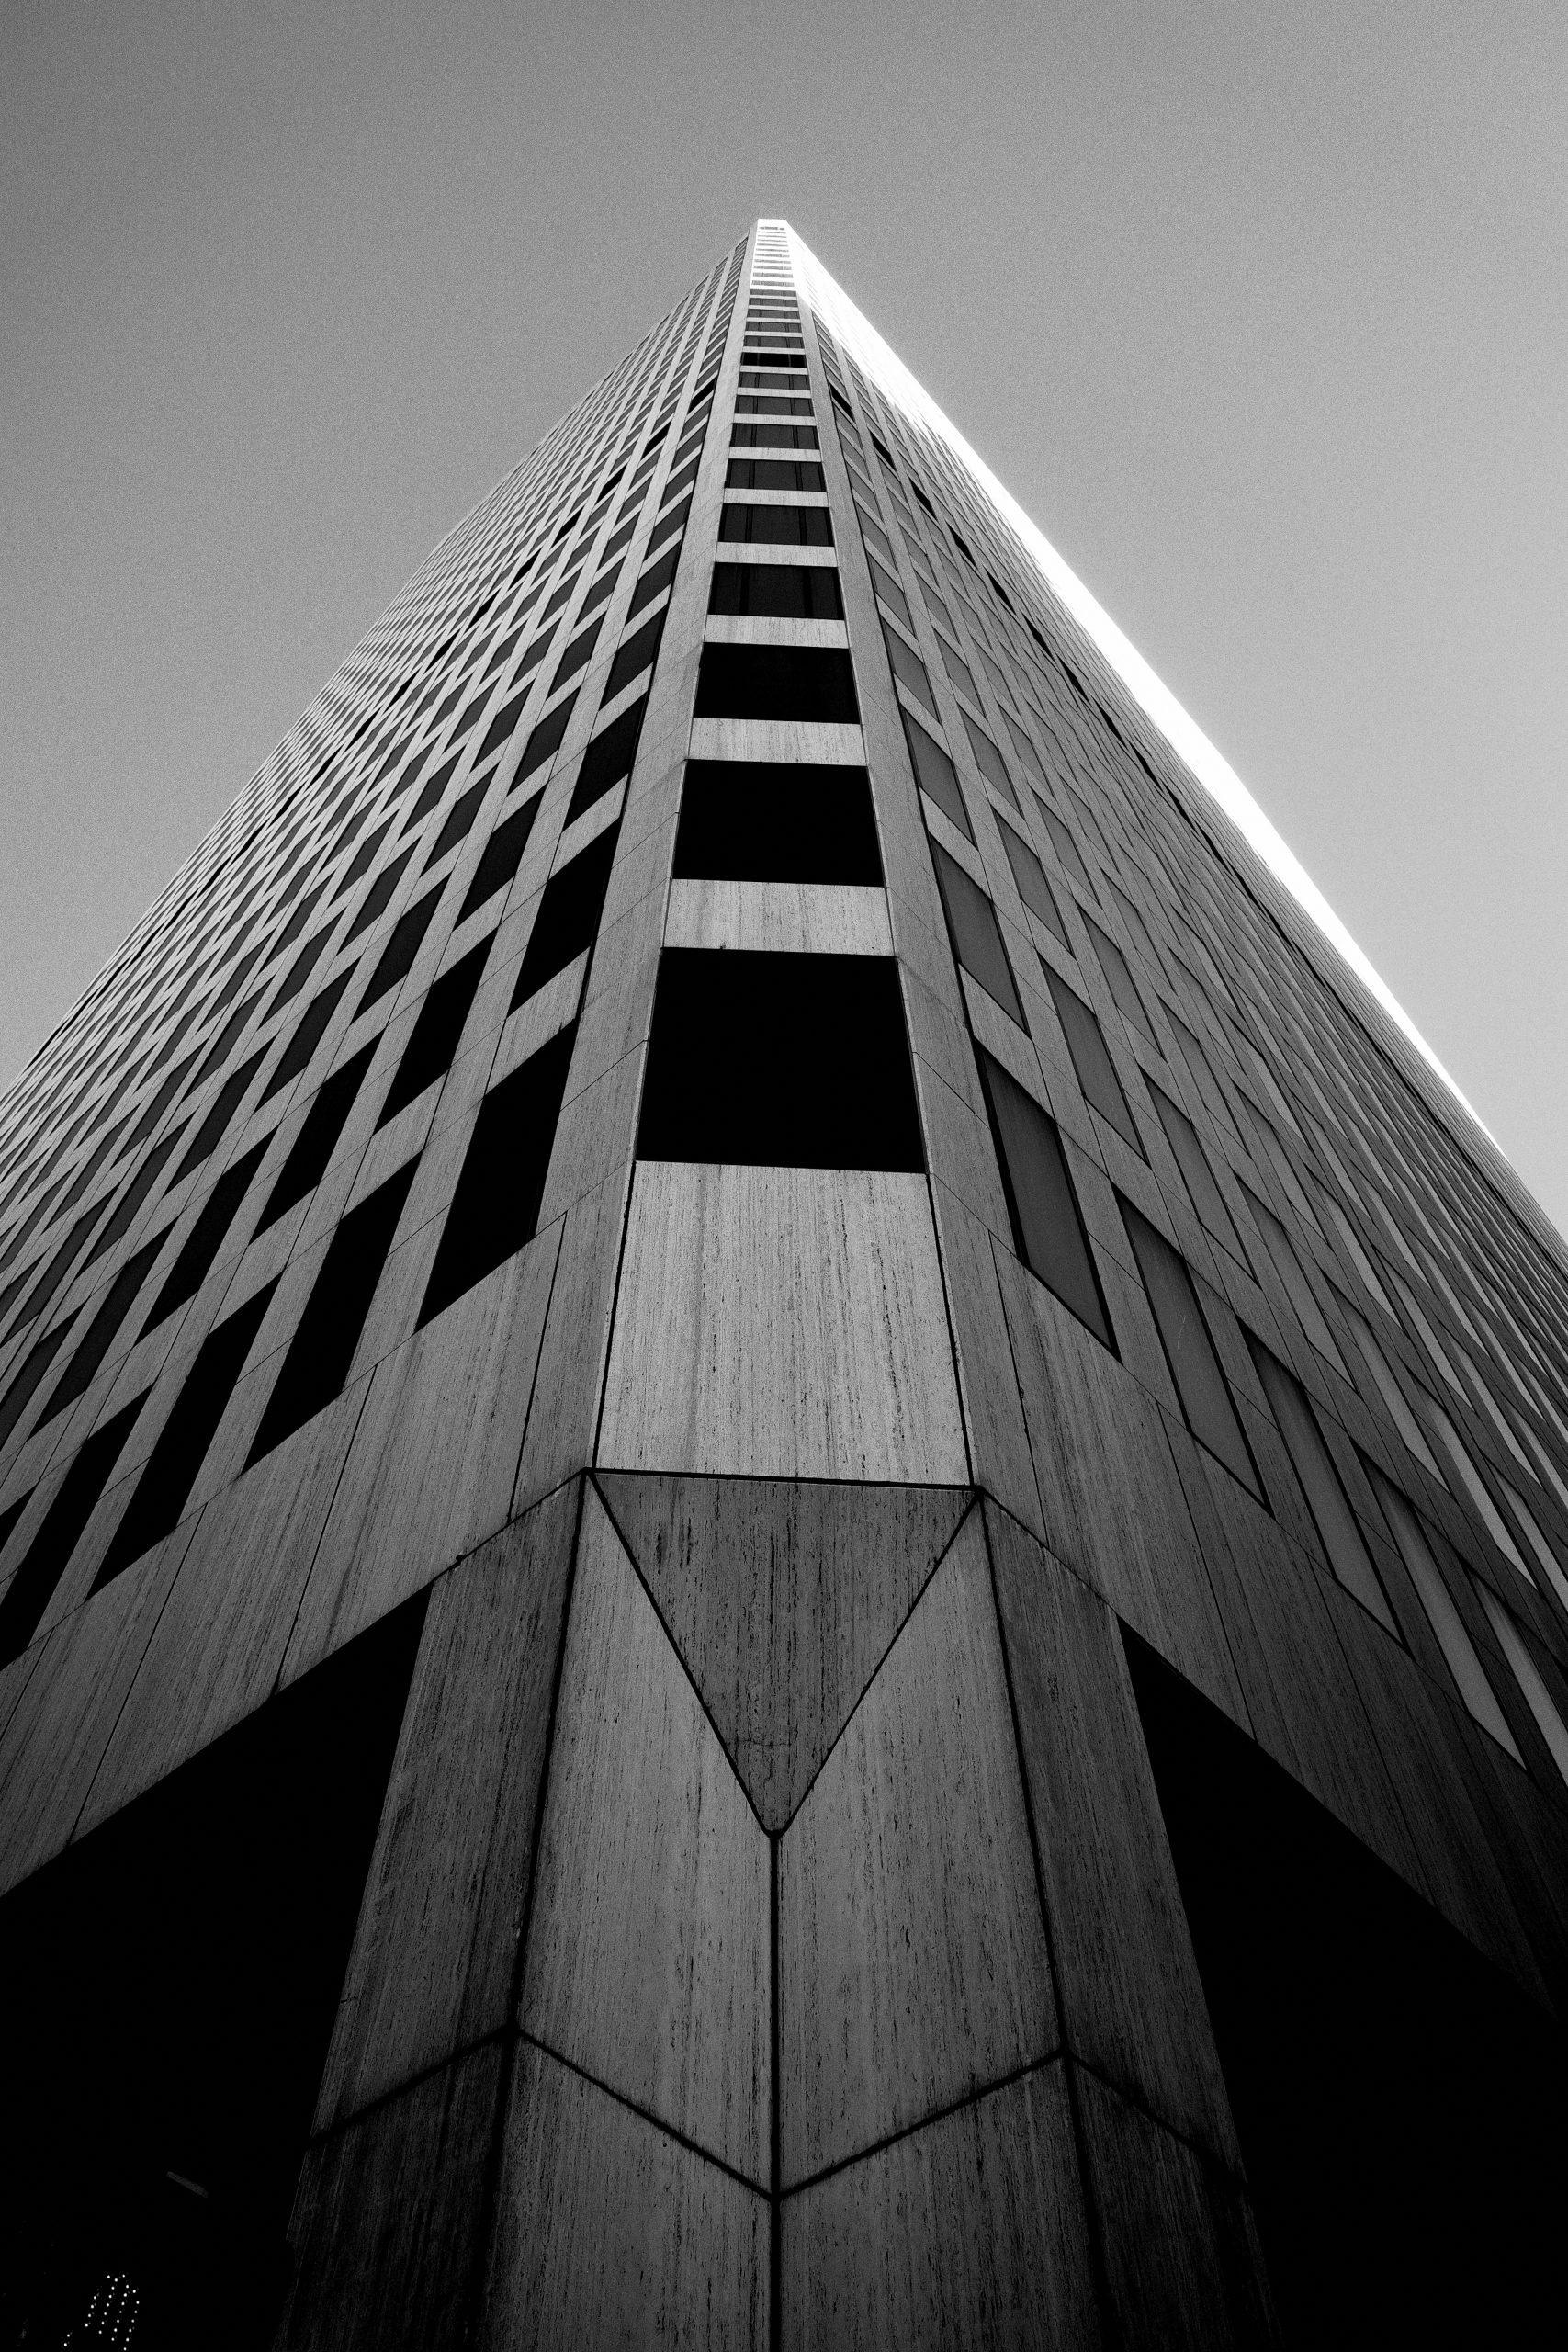 Architecture looking up